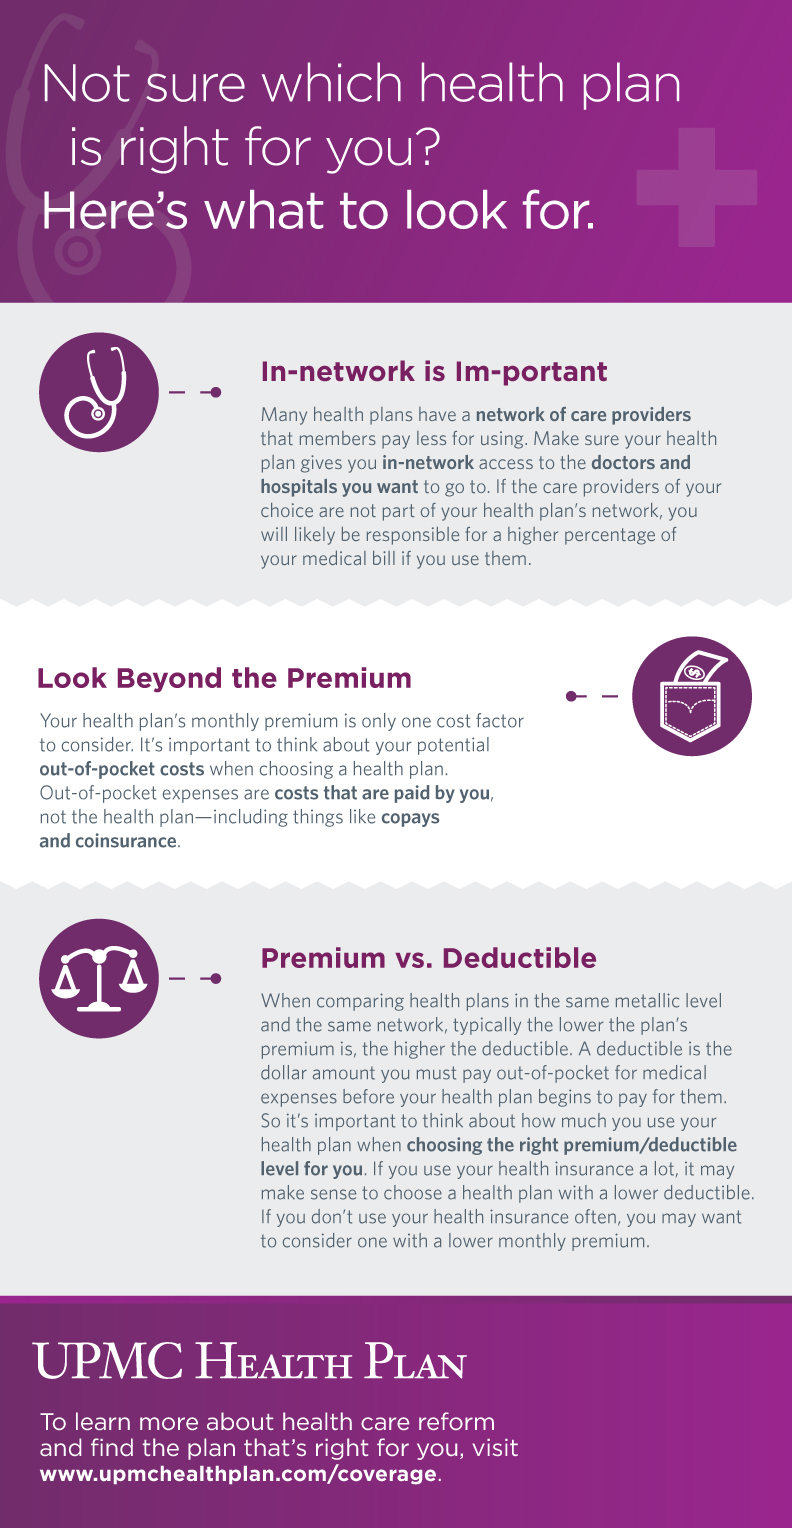 How to choose a health insurance plan | UPMC Health Plan